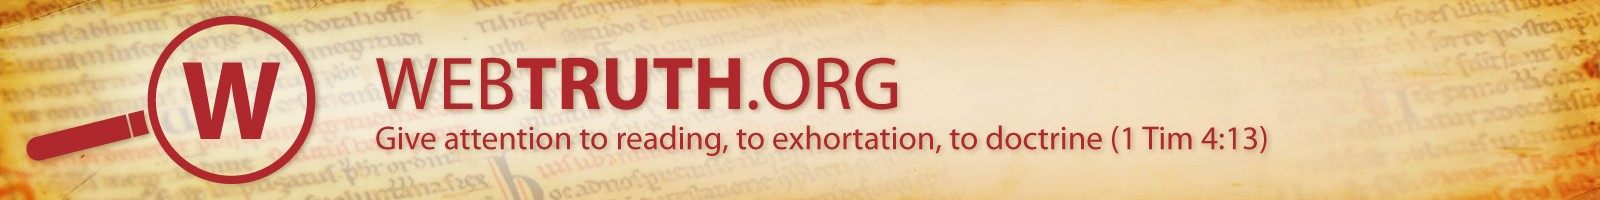 Web Truth – Give attention to reading, to exhortation, to doctrine (1 Tim 4:13